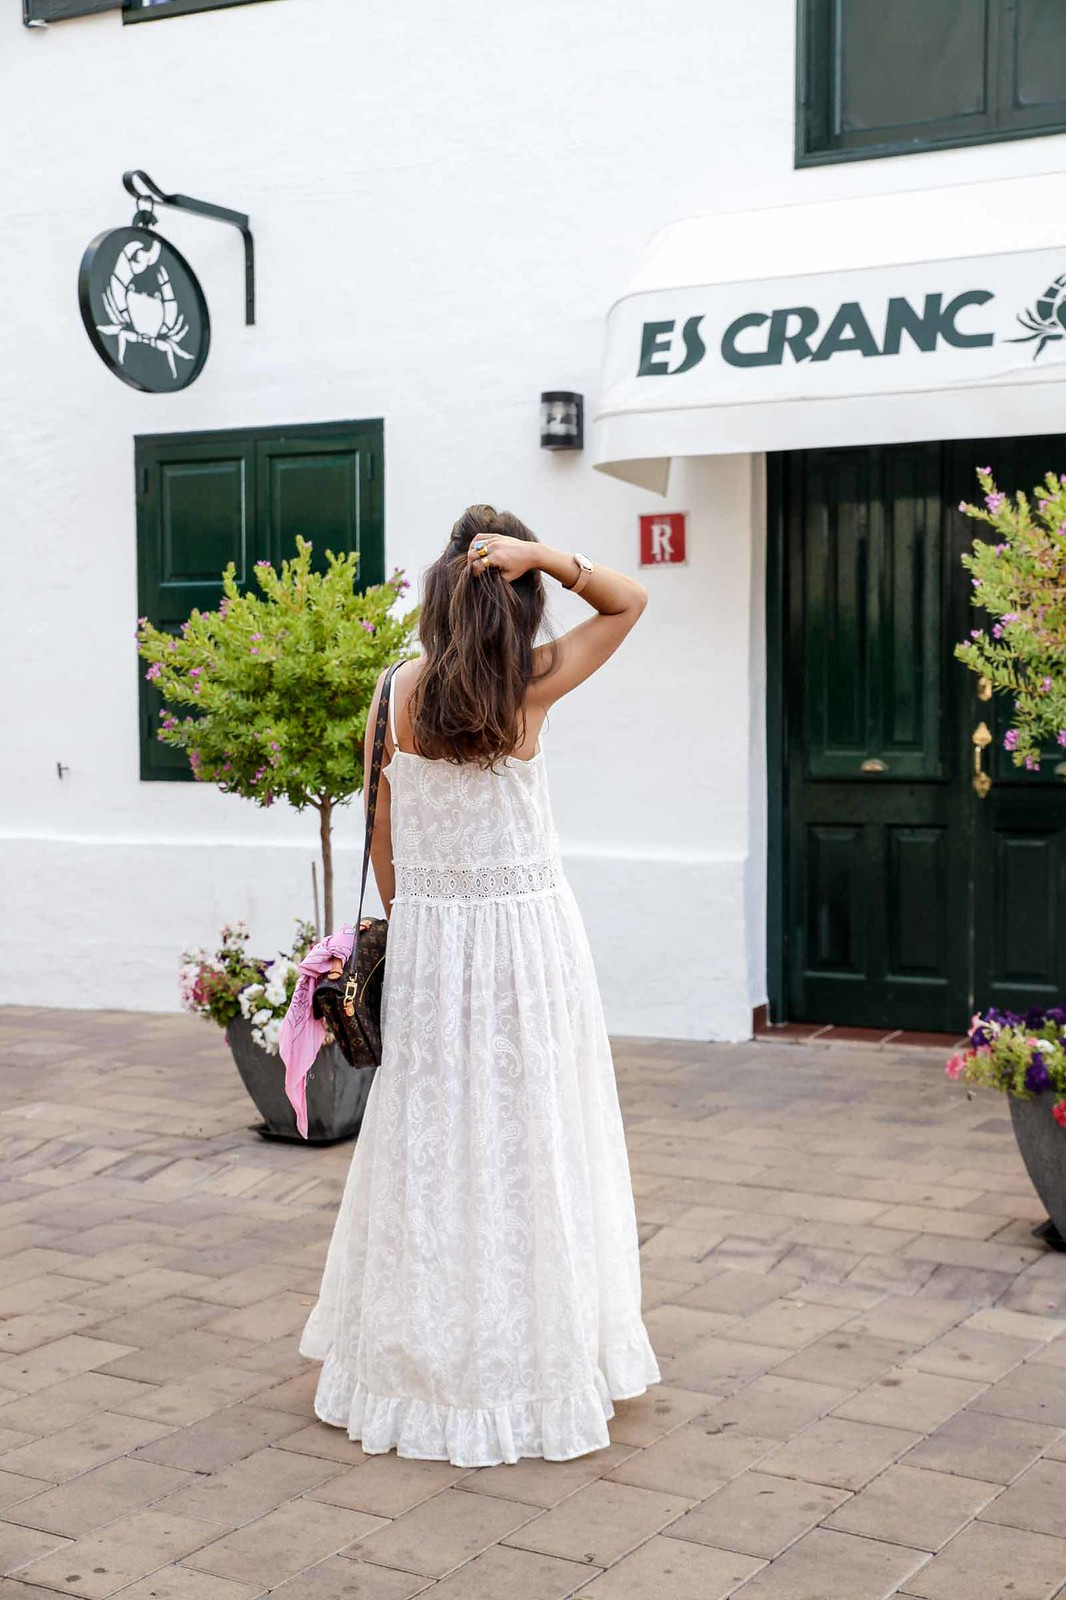 010_vestido_blanco_ibizenco_miss_june_long_dress_outfit_rayban_louis_vuitton_bag_outfit_streetstyle_influencer_barcelona_theguestgirl_the_guest_girl_barcelona_influencer